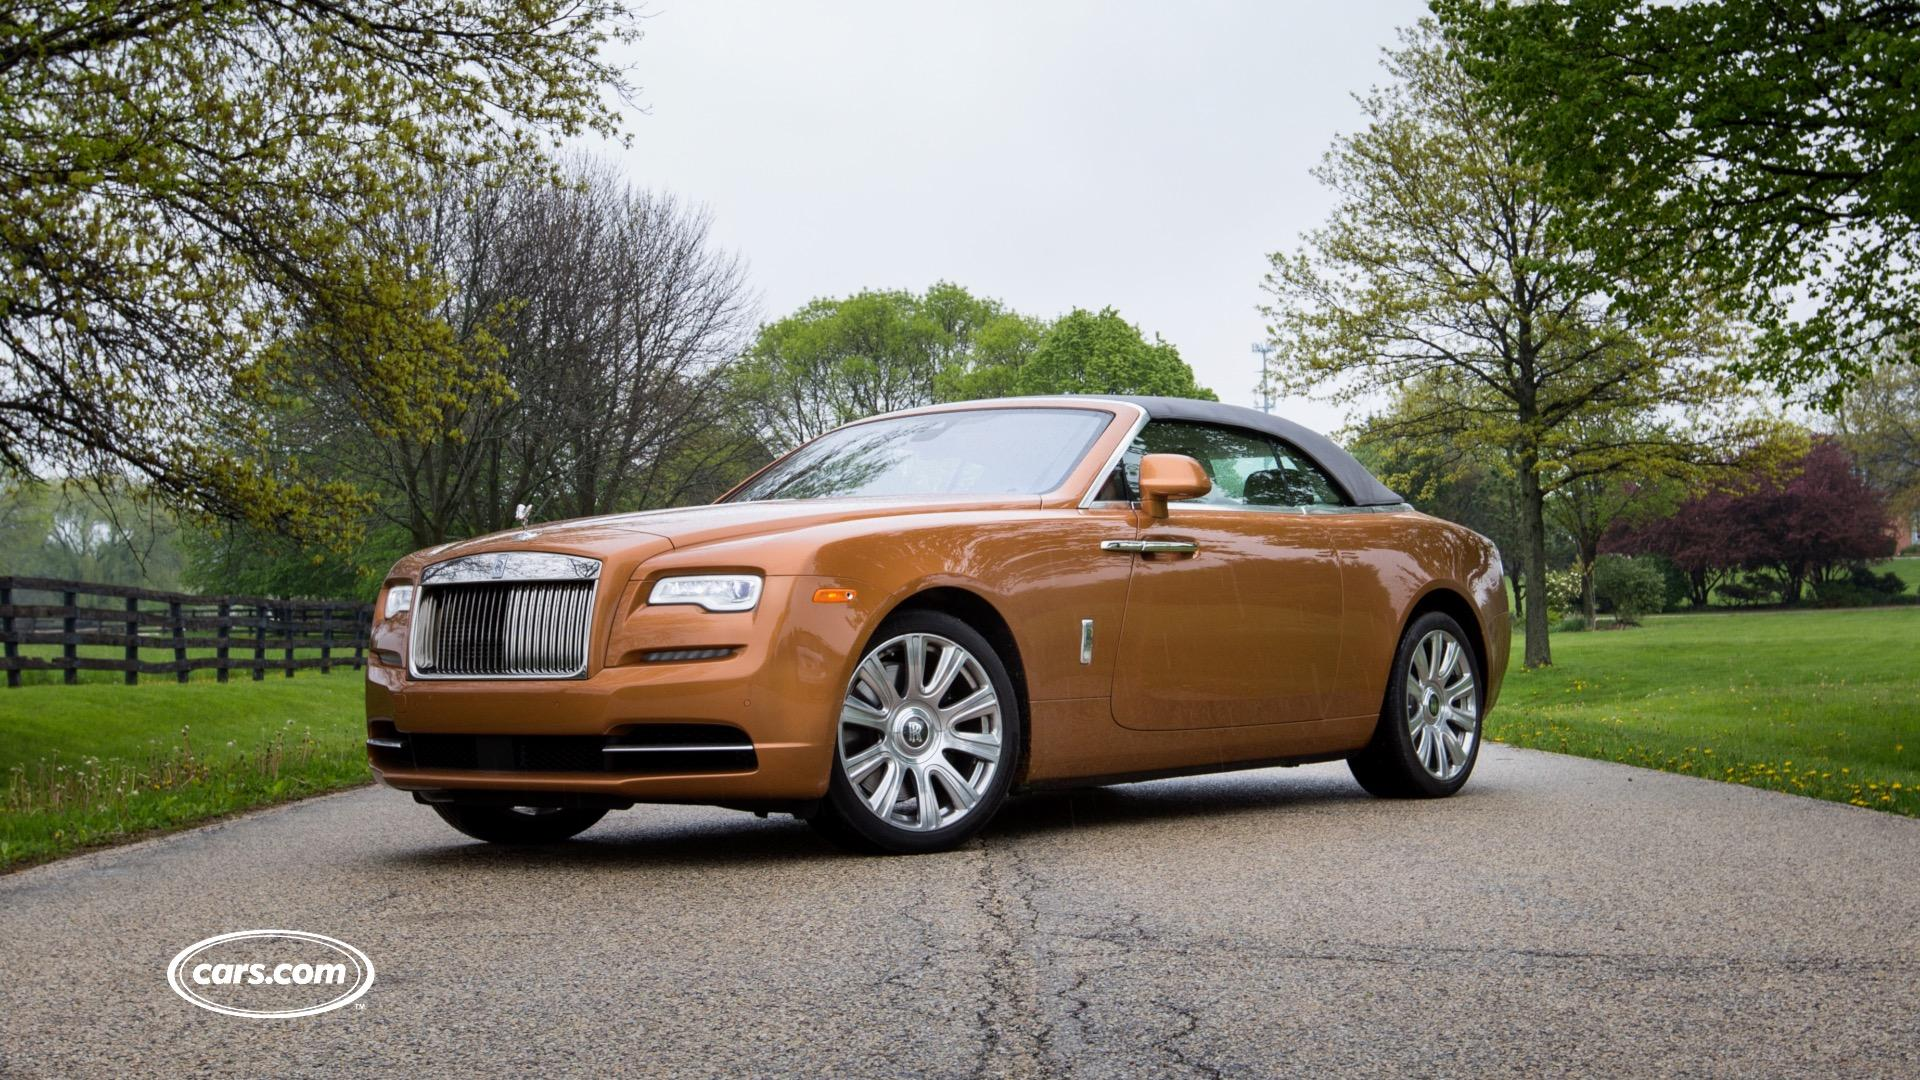 Rolls-Royce - Latest models: Pricing, MPG, and Ratings | Cars.com